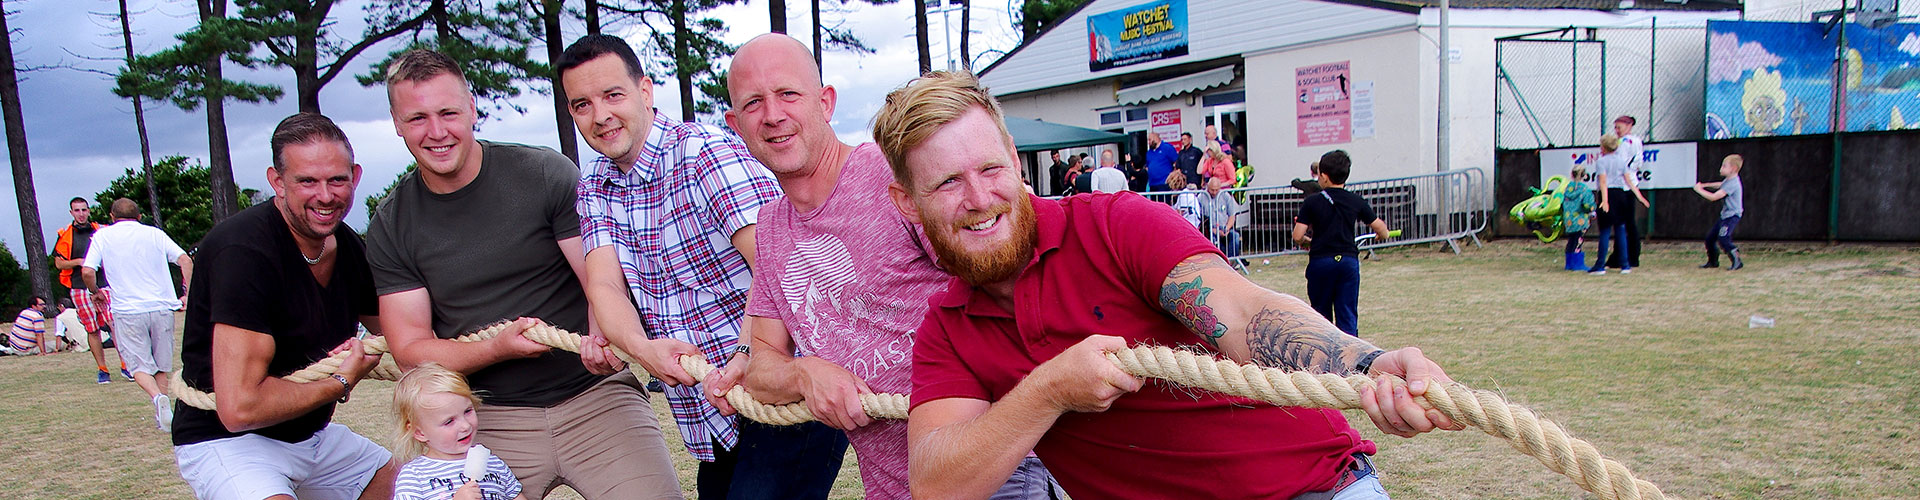 Watchet locals playing tug of war and smiling